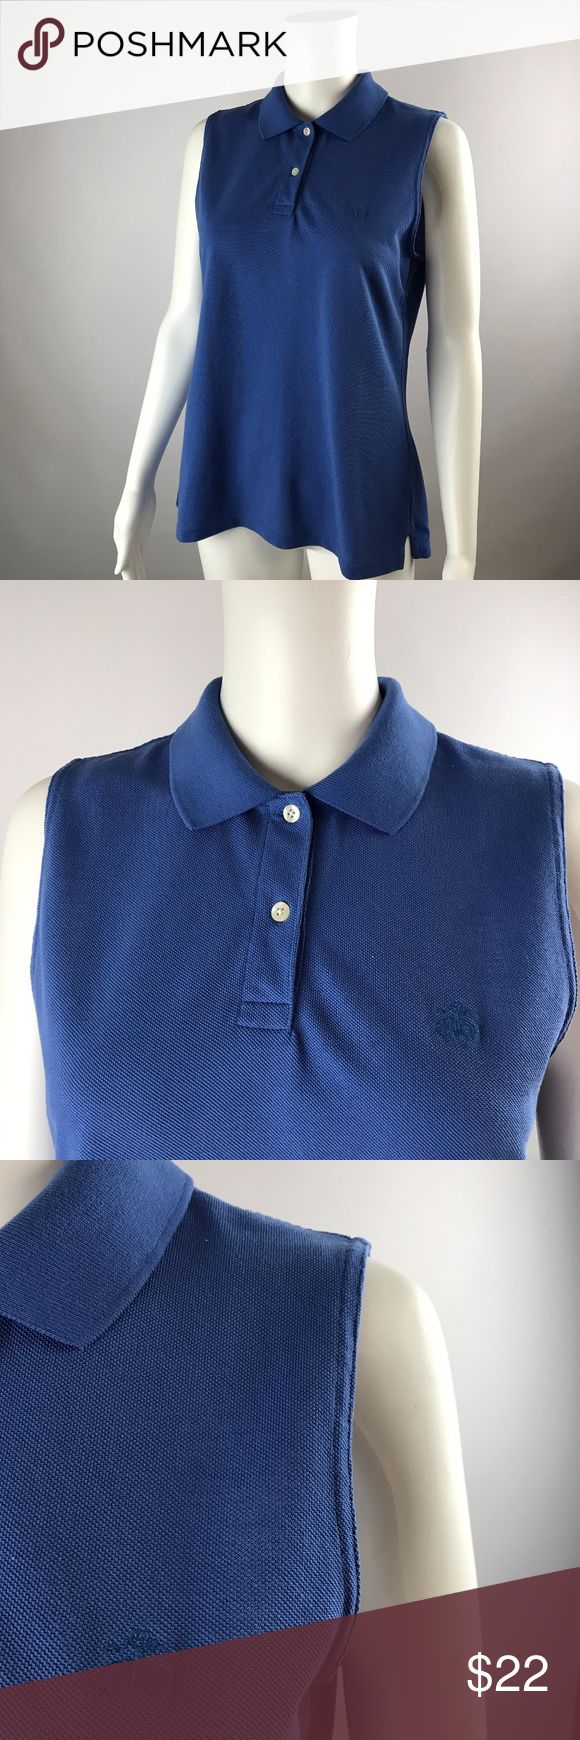 Brooks Brothers MEDIUM Sleeveless Polo Shirt Brooks Brothers MEDIUM Sleeveless Polo Shirt Womens BLUE PURPLE Embroider Logo Pre-owned, no stains or defects, Chest 38 Length 24 Brooks Brothers Tops Blouses